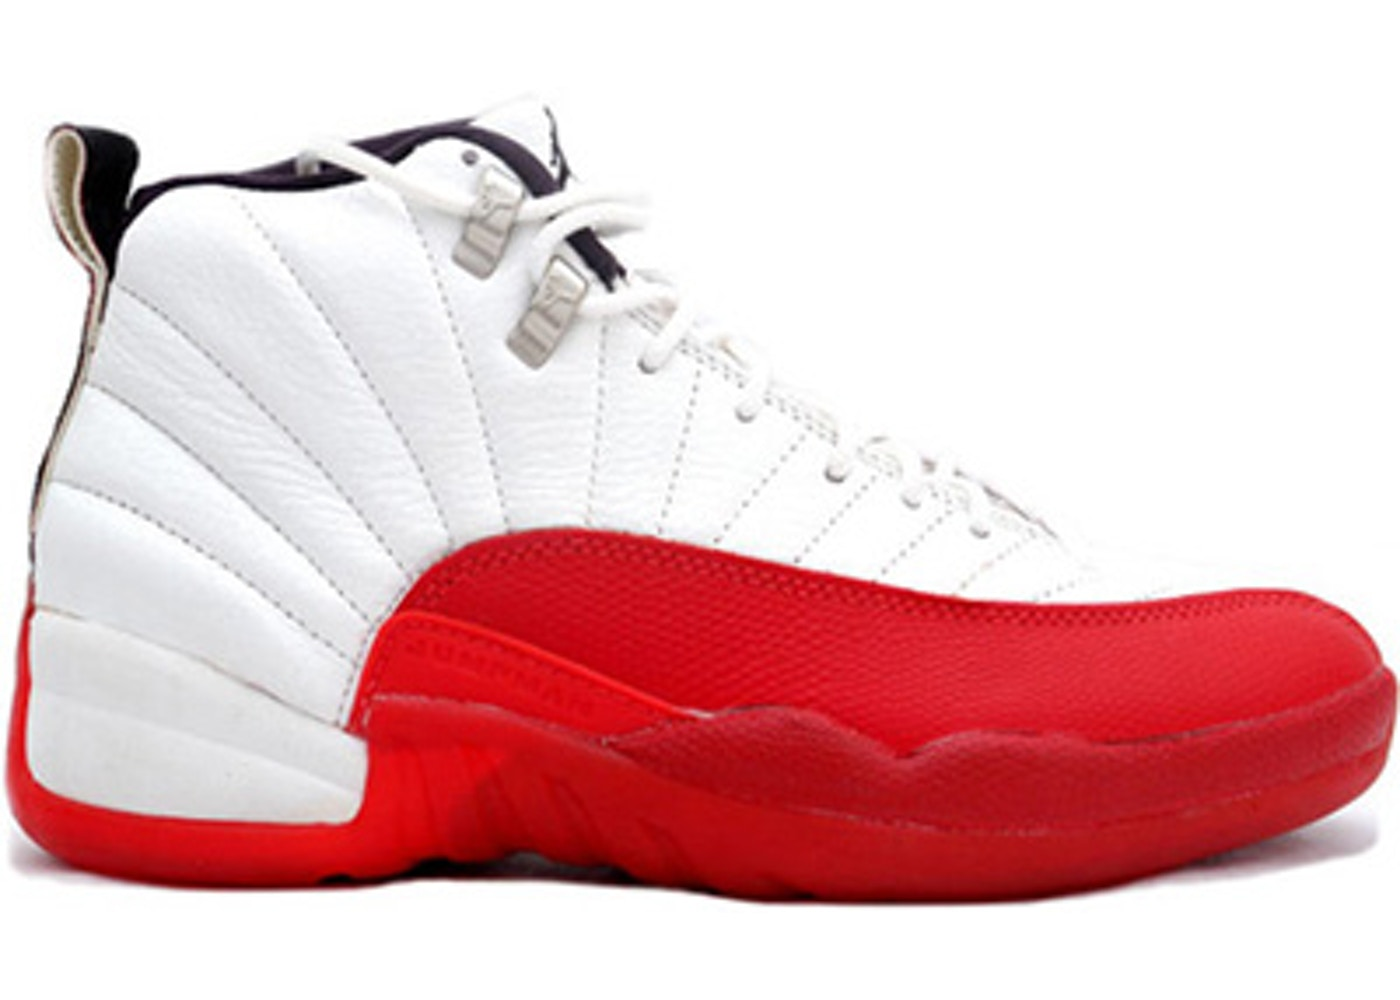 uk availability 7a9e4 45759 Jordan 12 OG Cherry (1997) - 130690-161